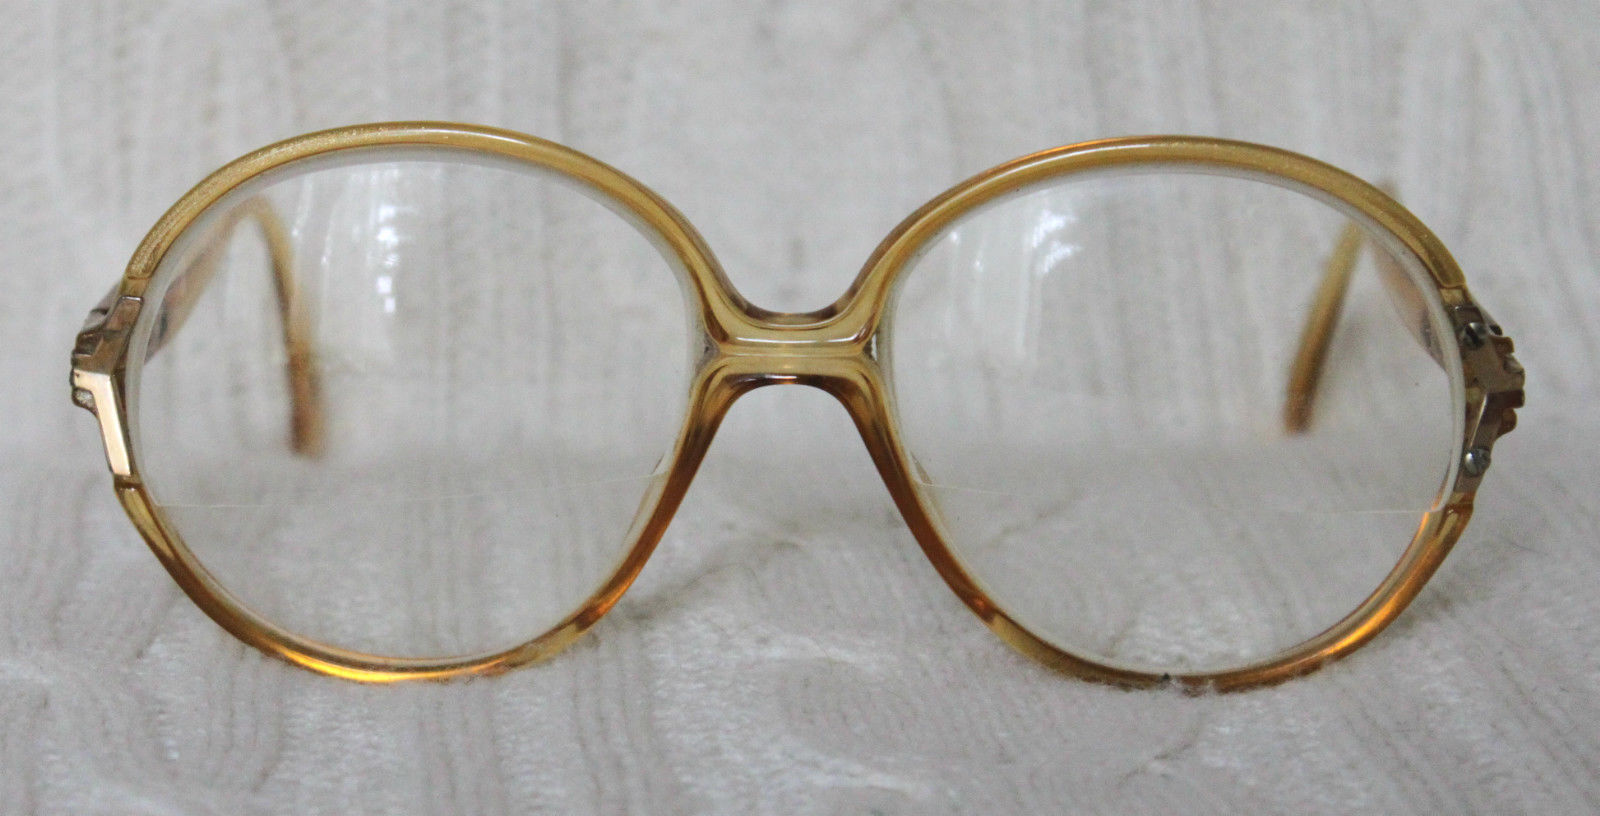 Designer Eyeglass Frames From Germany : Vintage 70s Christian Dior 2136 10 53 16 Gold Designer ...